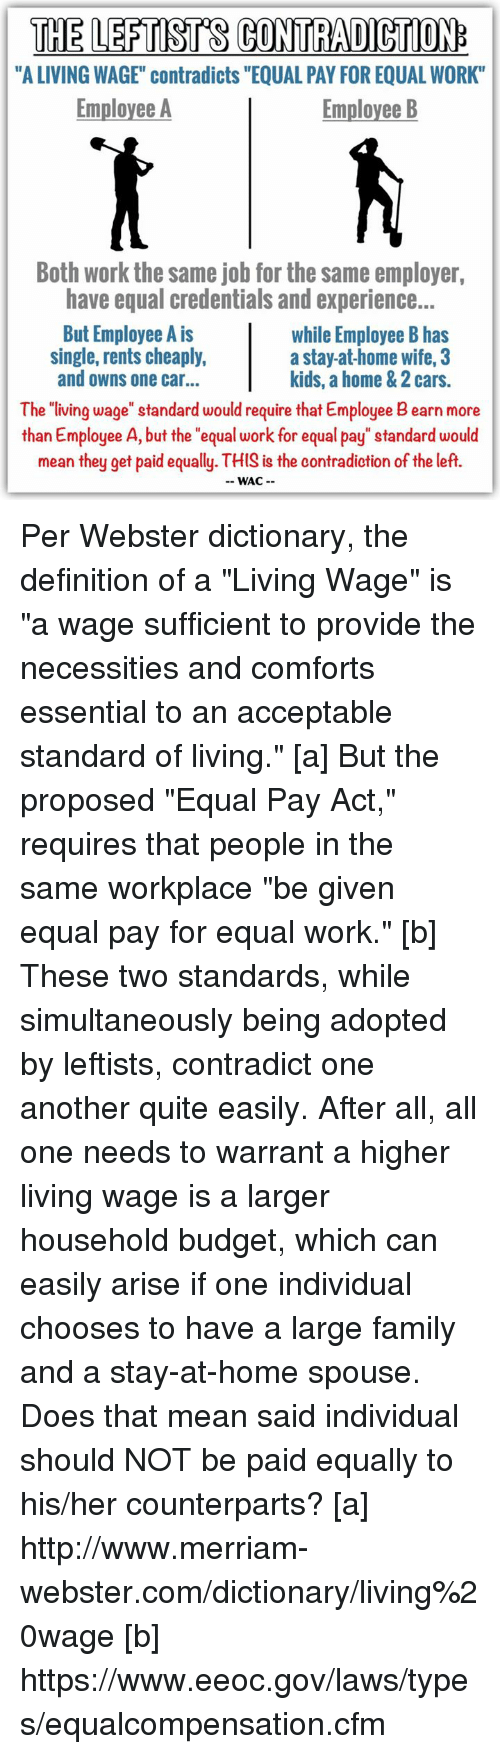 the leftsts contradiction a living wage contradicts equal pay for